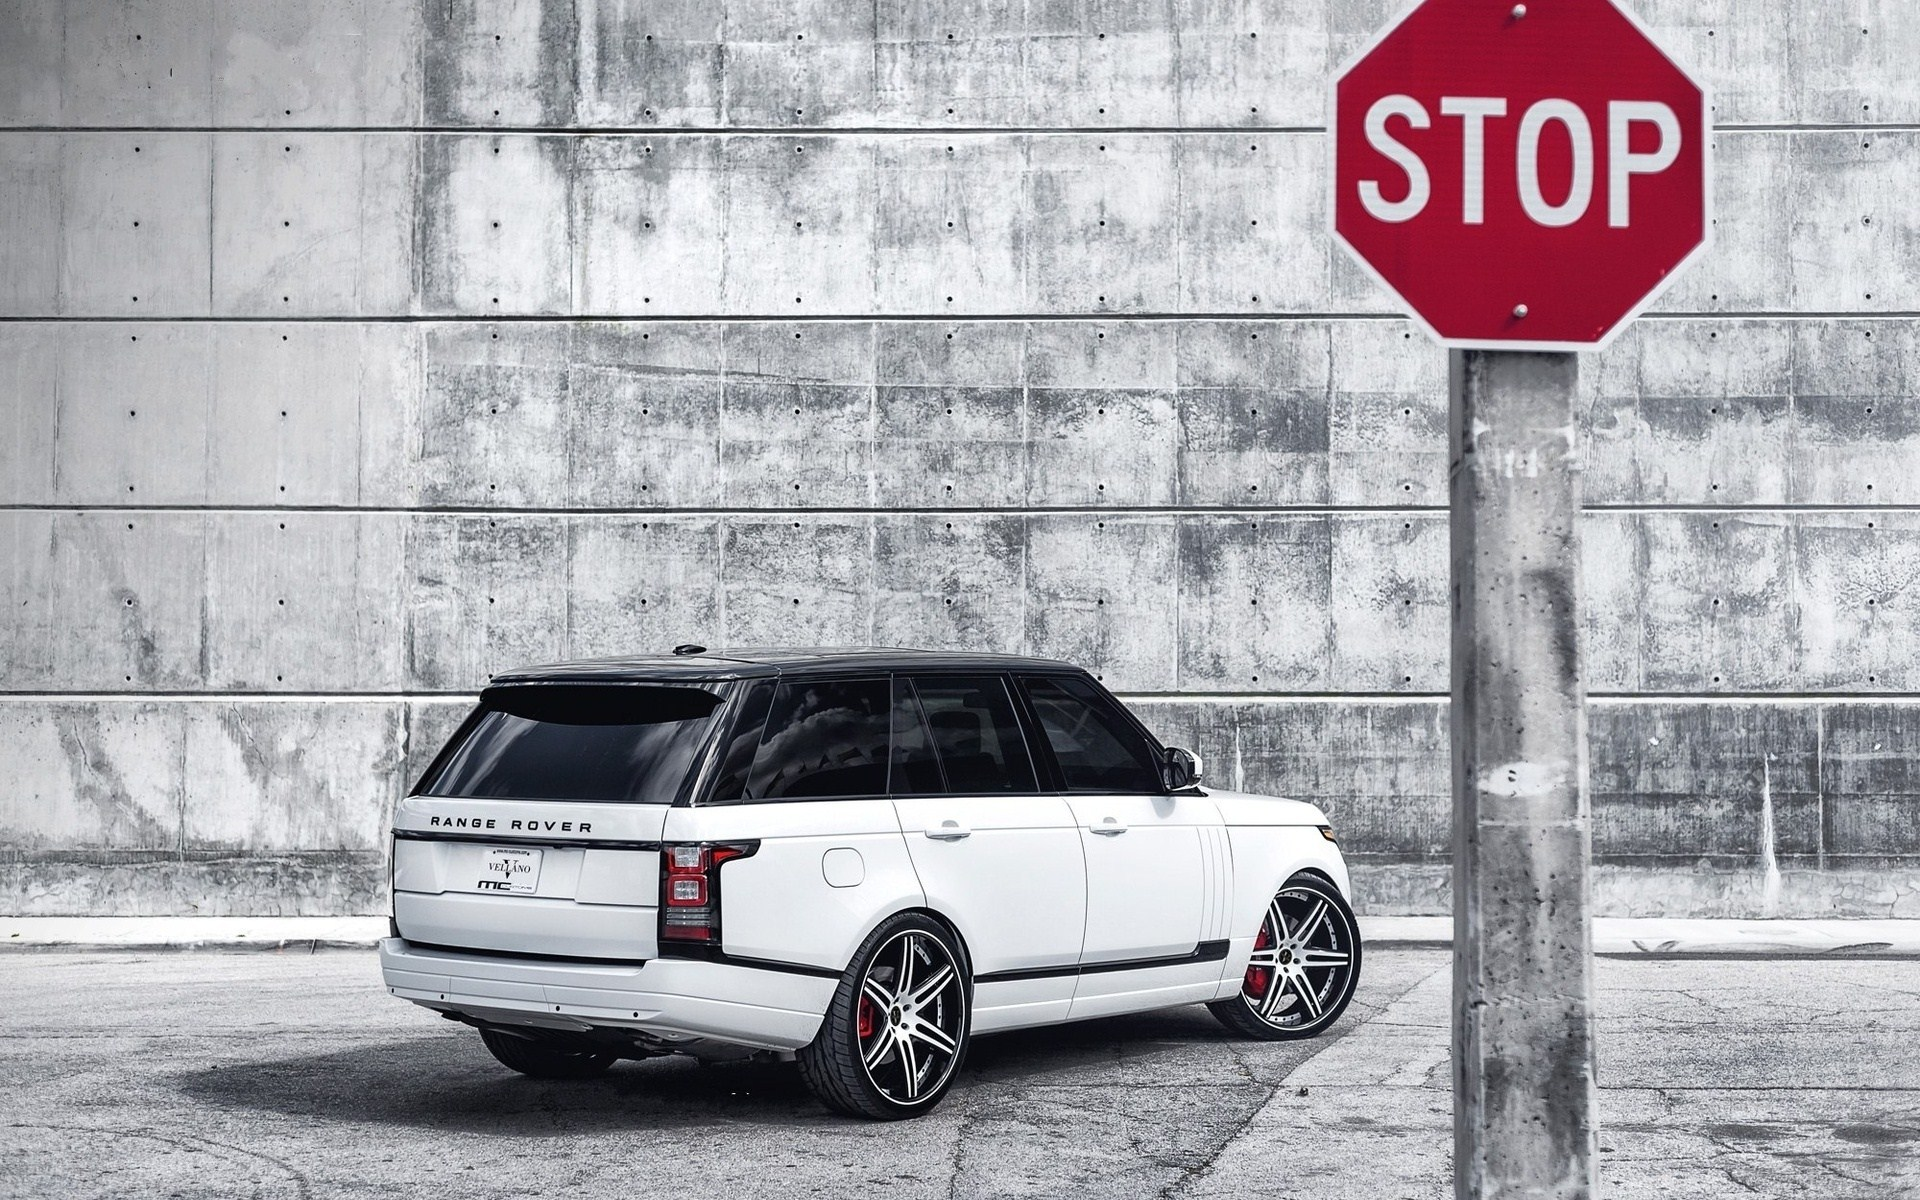 Land Rover Range Rover Stop Sign